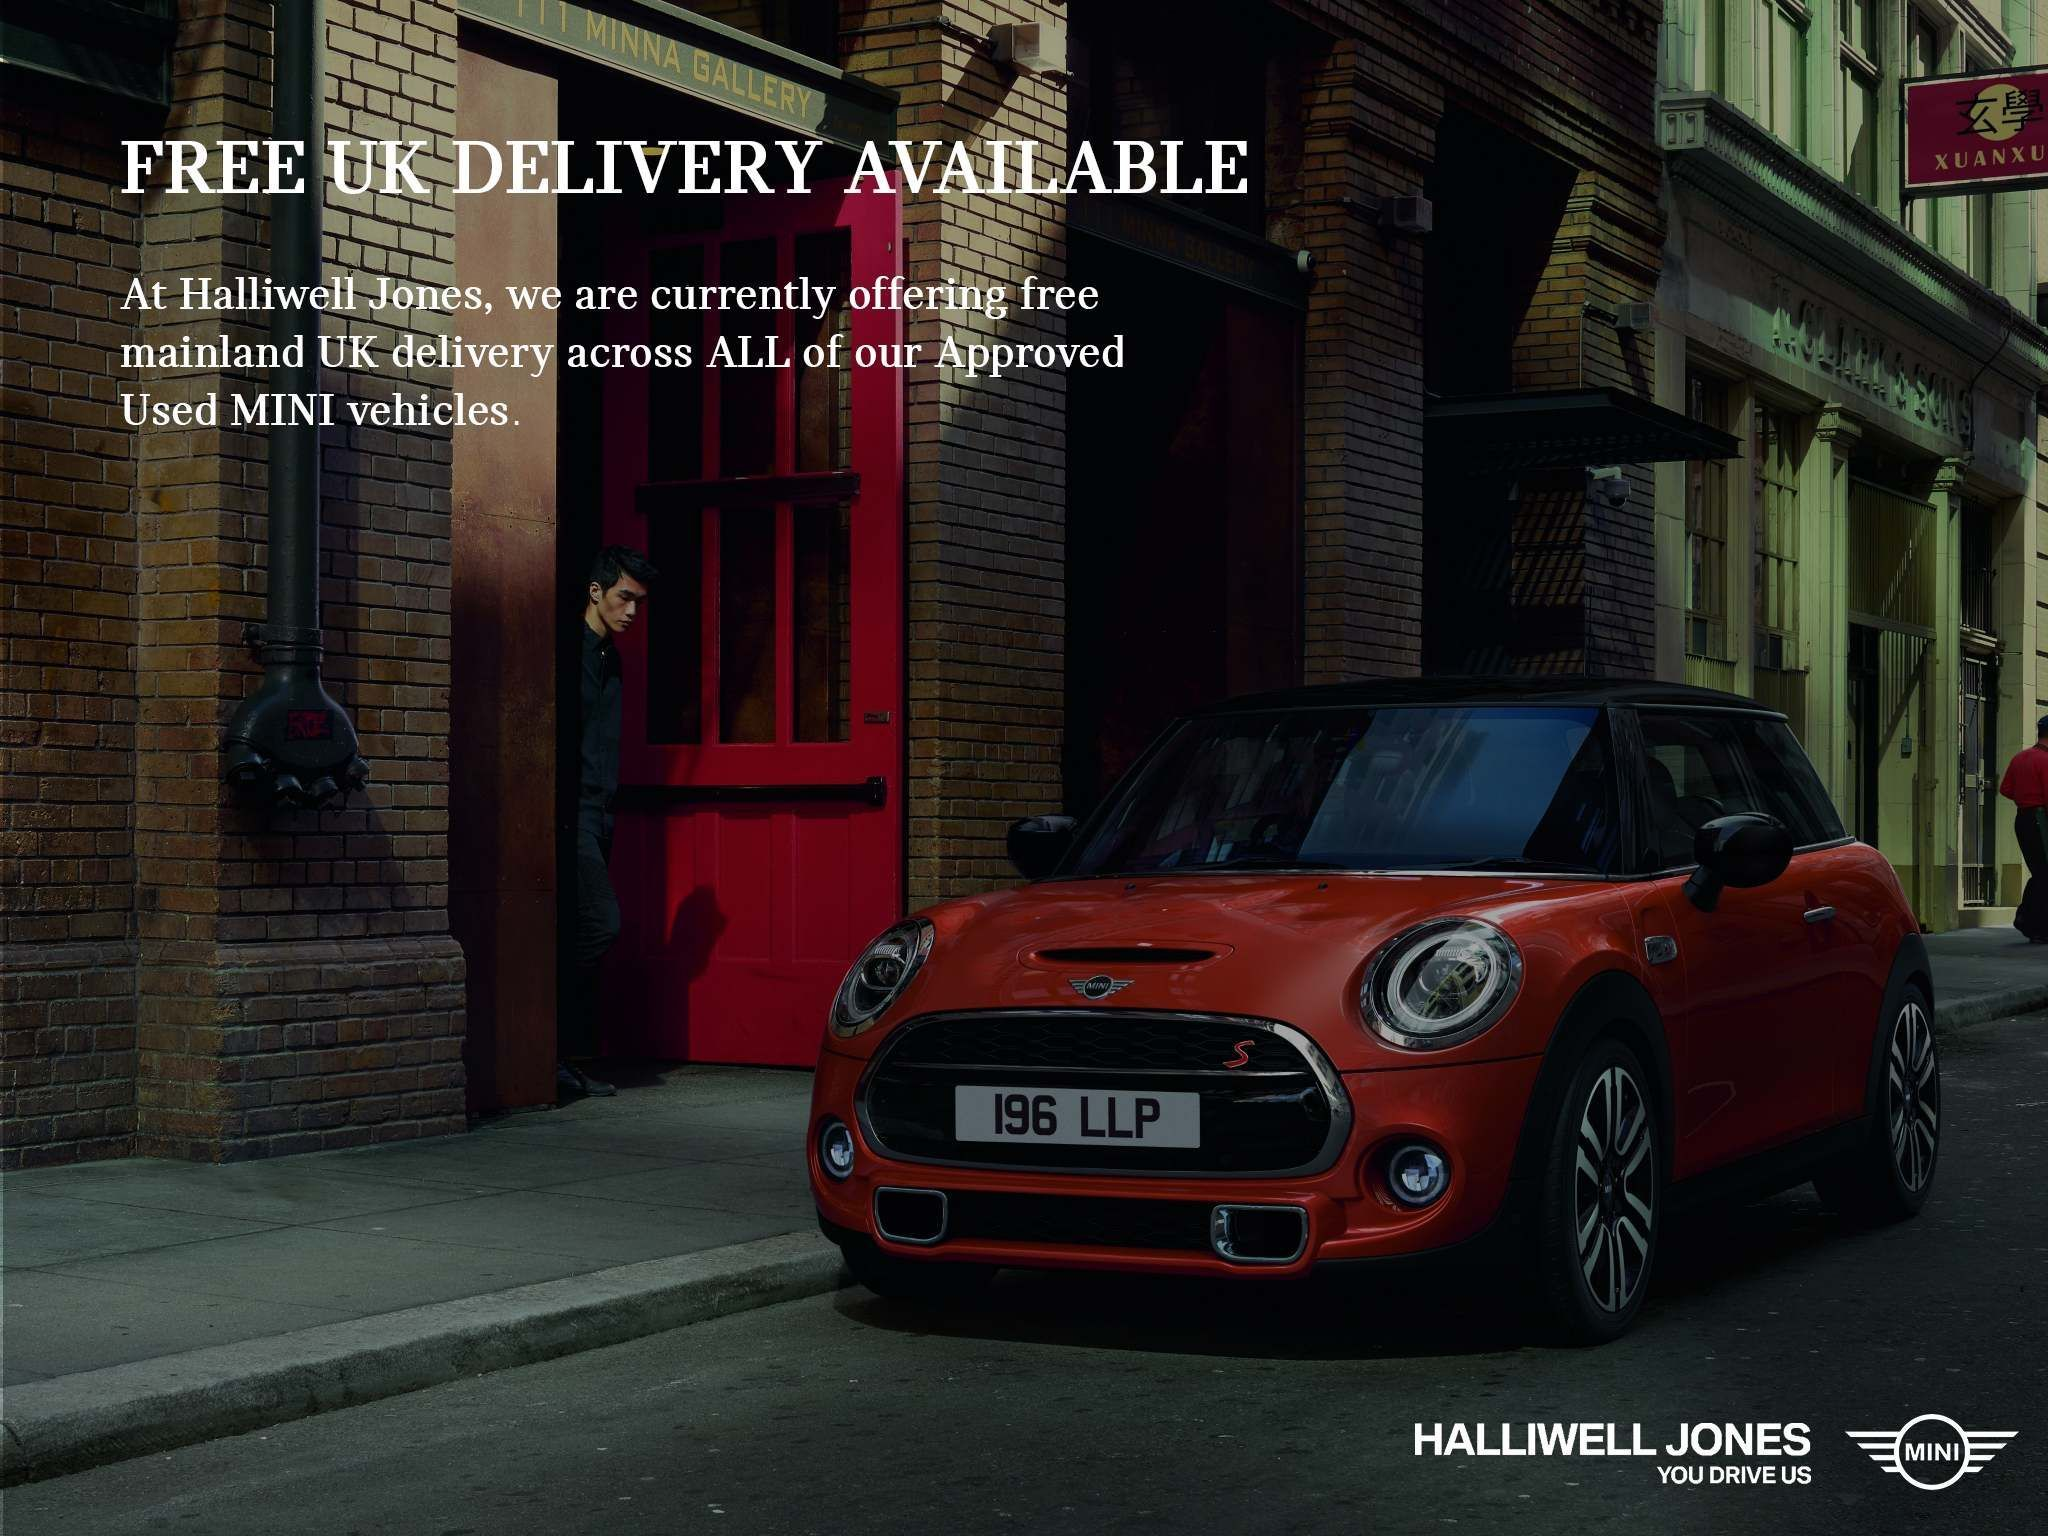 Image 16 - MINI Countryman (MP19XBH)